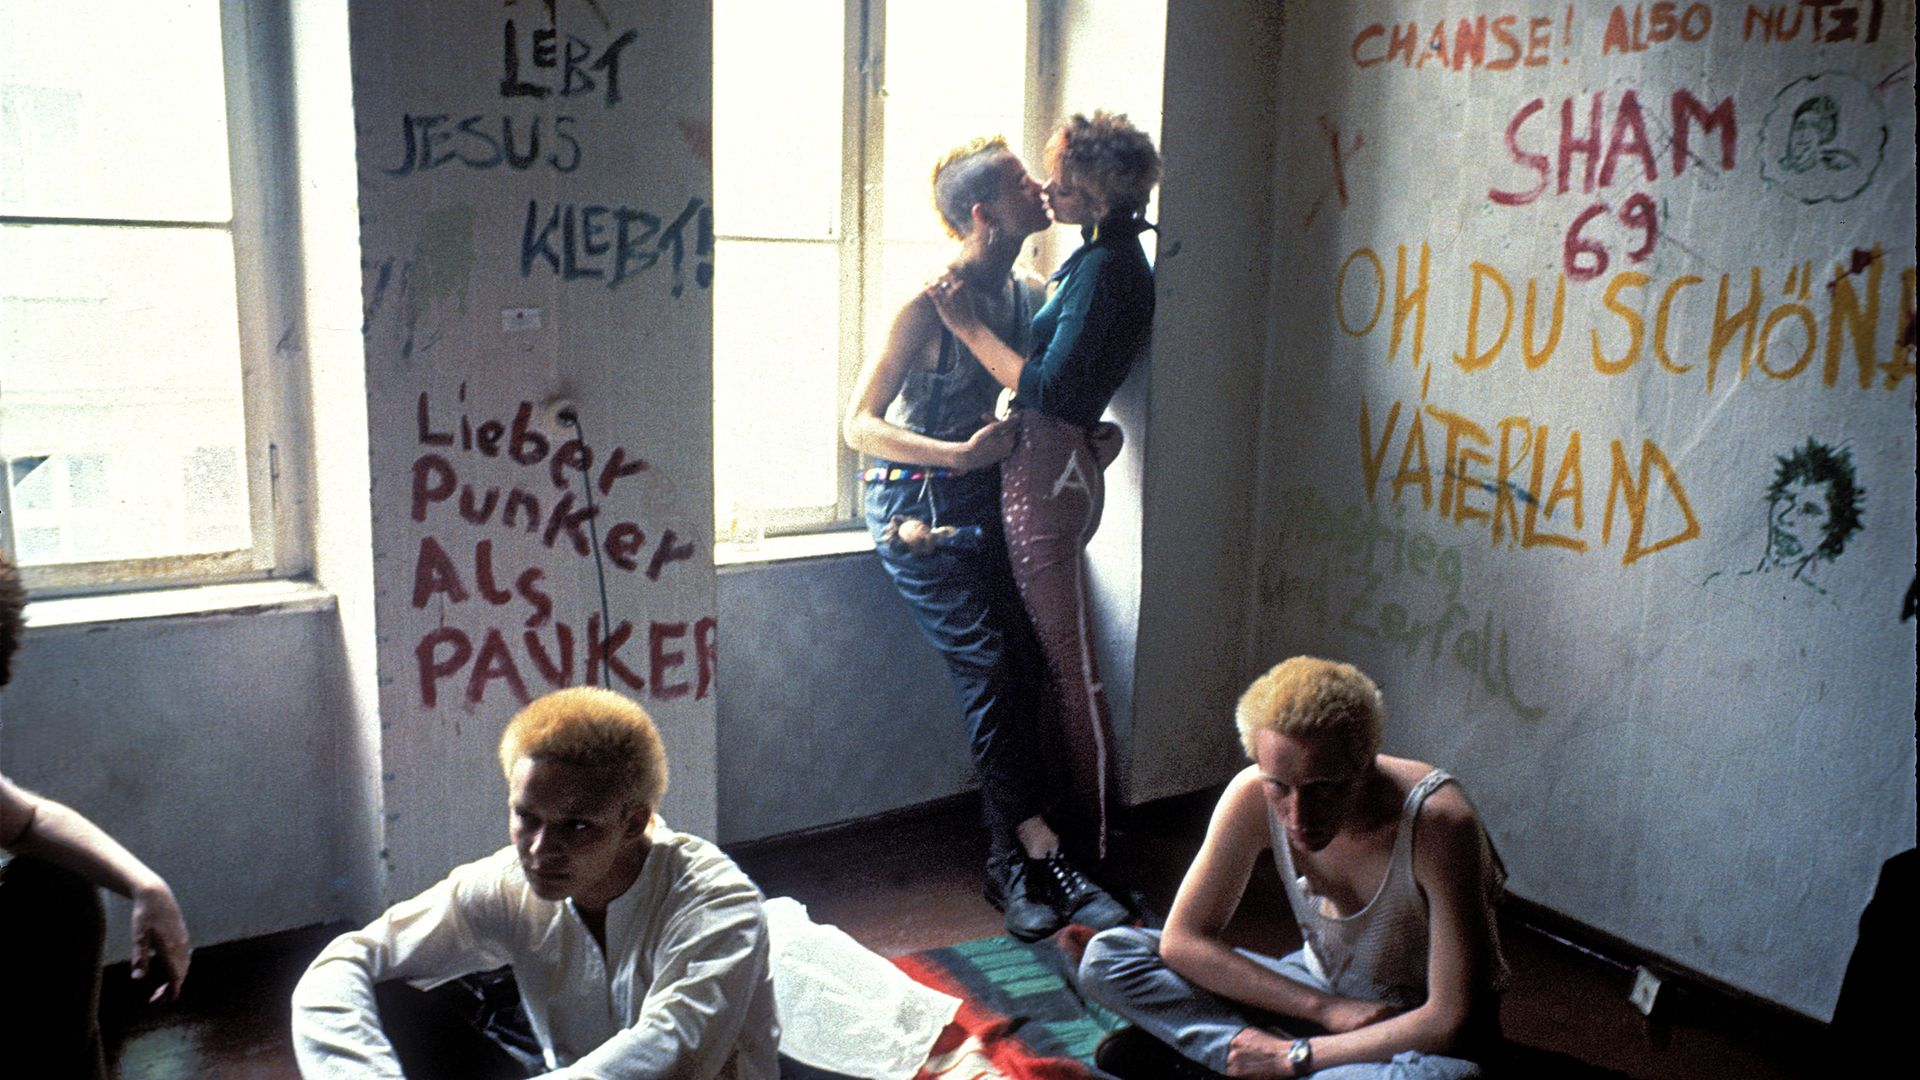 An apartment squatted by a group of punks in East Berlin, 1982